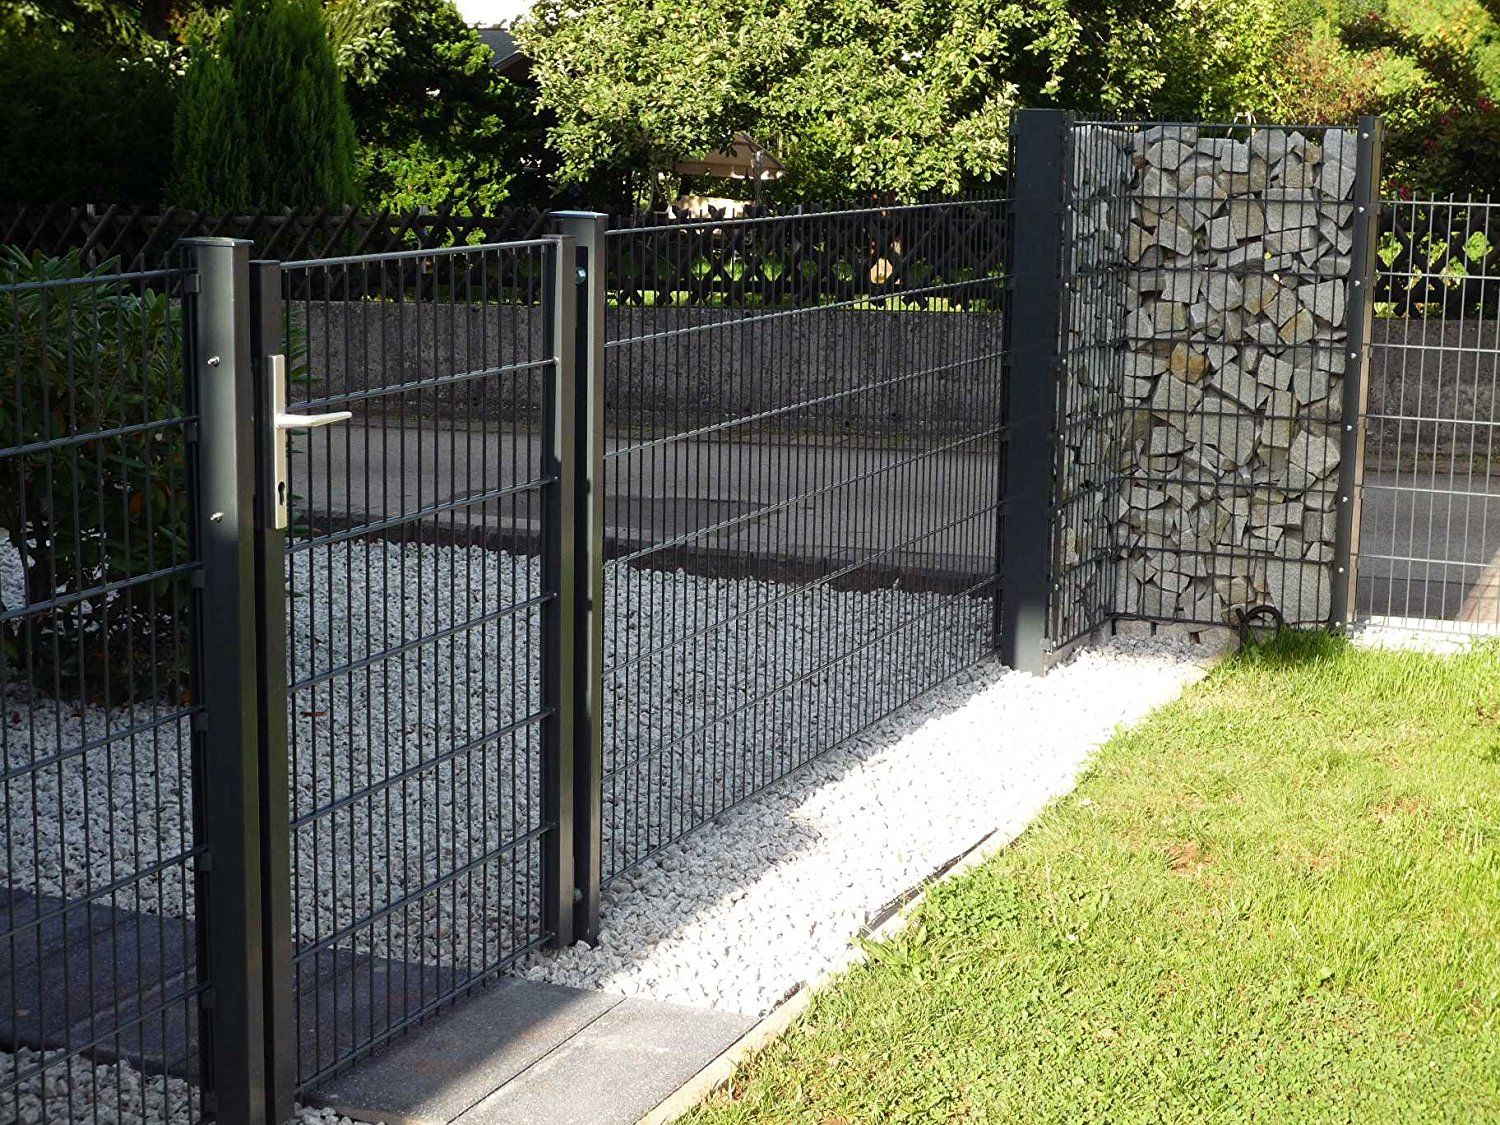 gartenzaun aus metall gartenzaun pinterest fence diy fence und garden. Black Bedroom Furniture Sets. Home Design Ideas